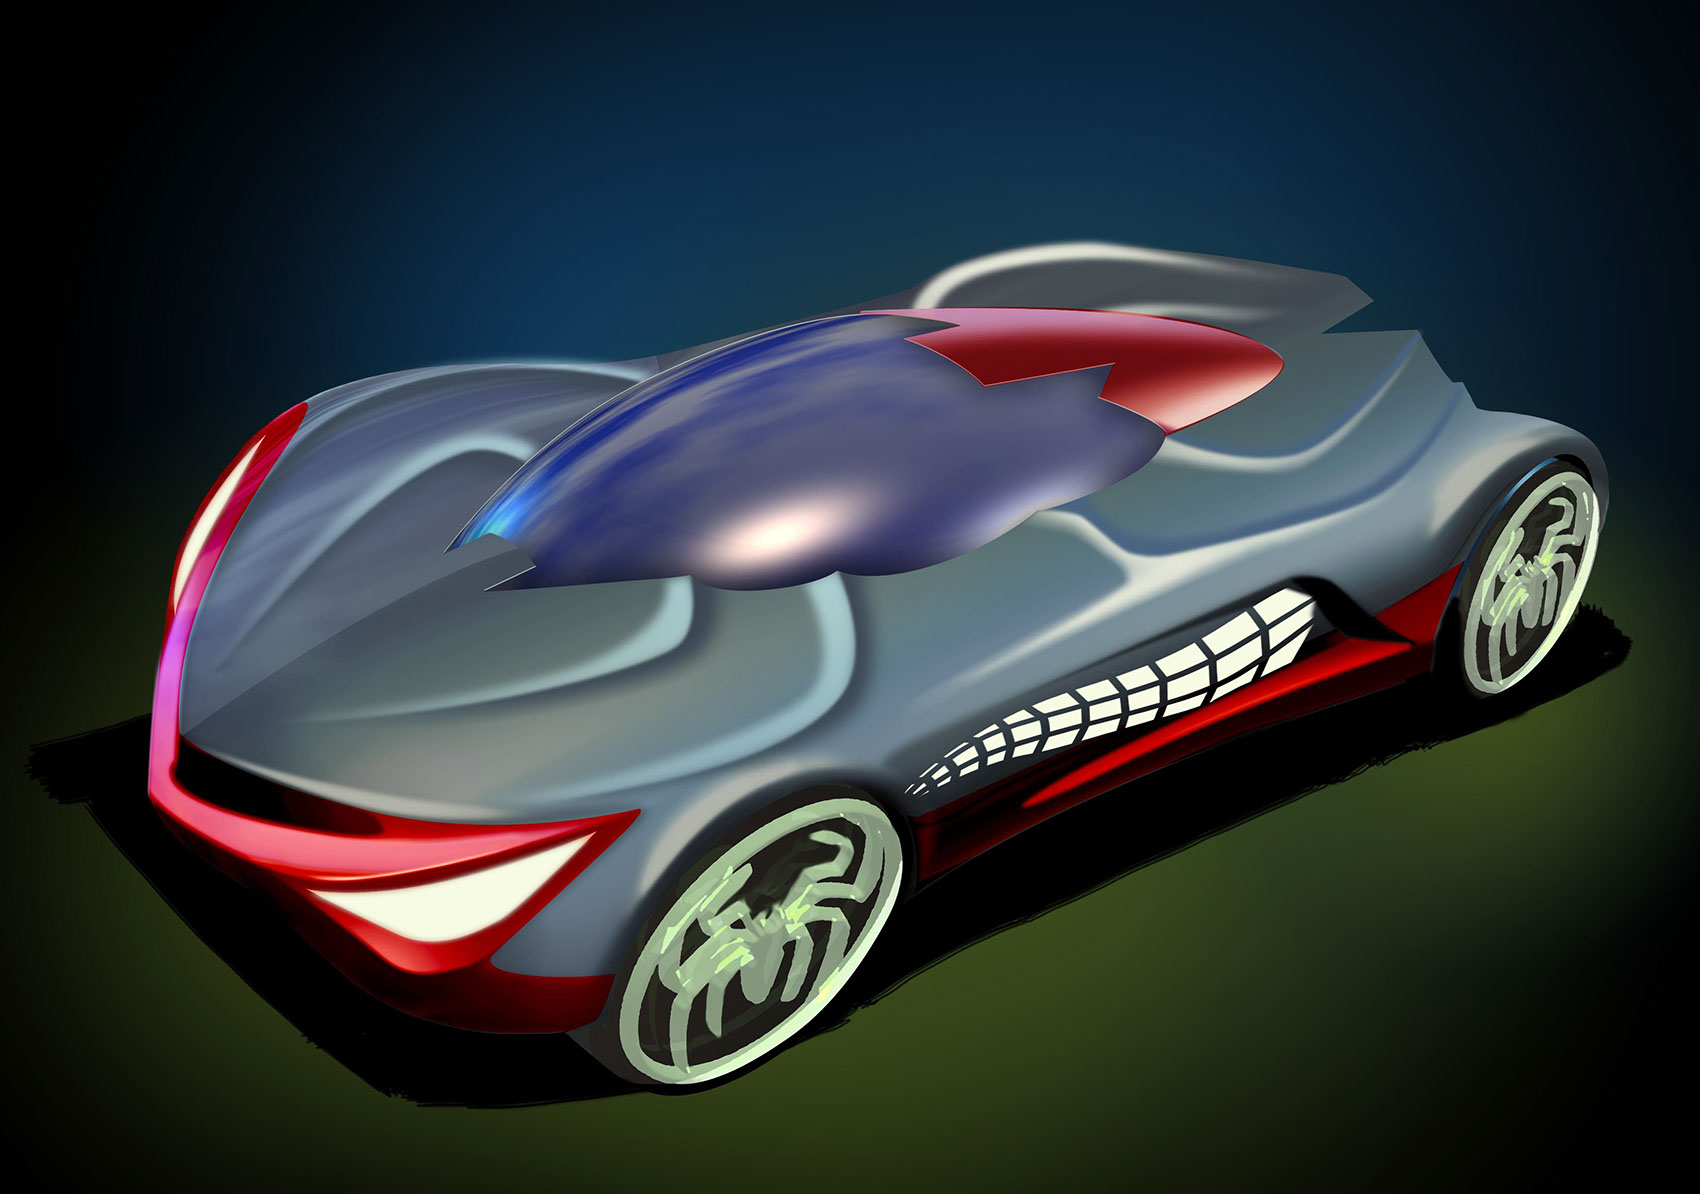 illustration-Products_Spirderman Car-Tony Randazzo